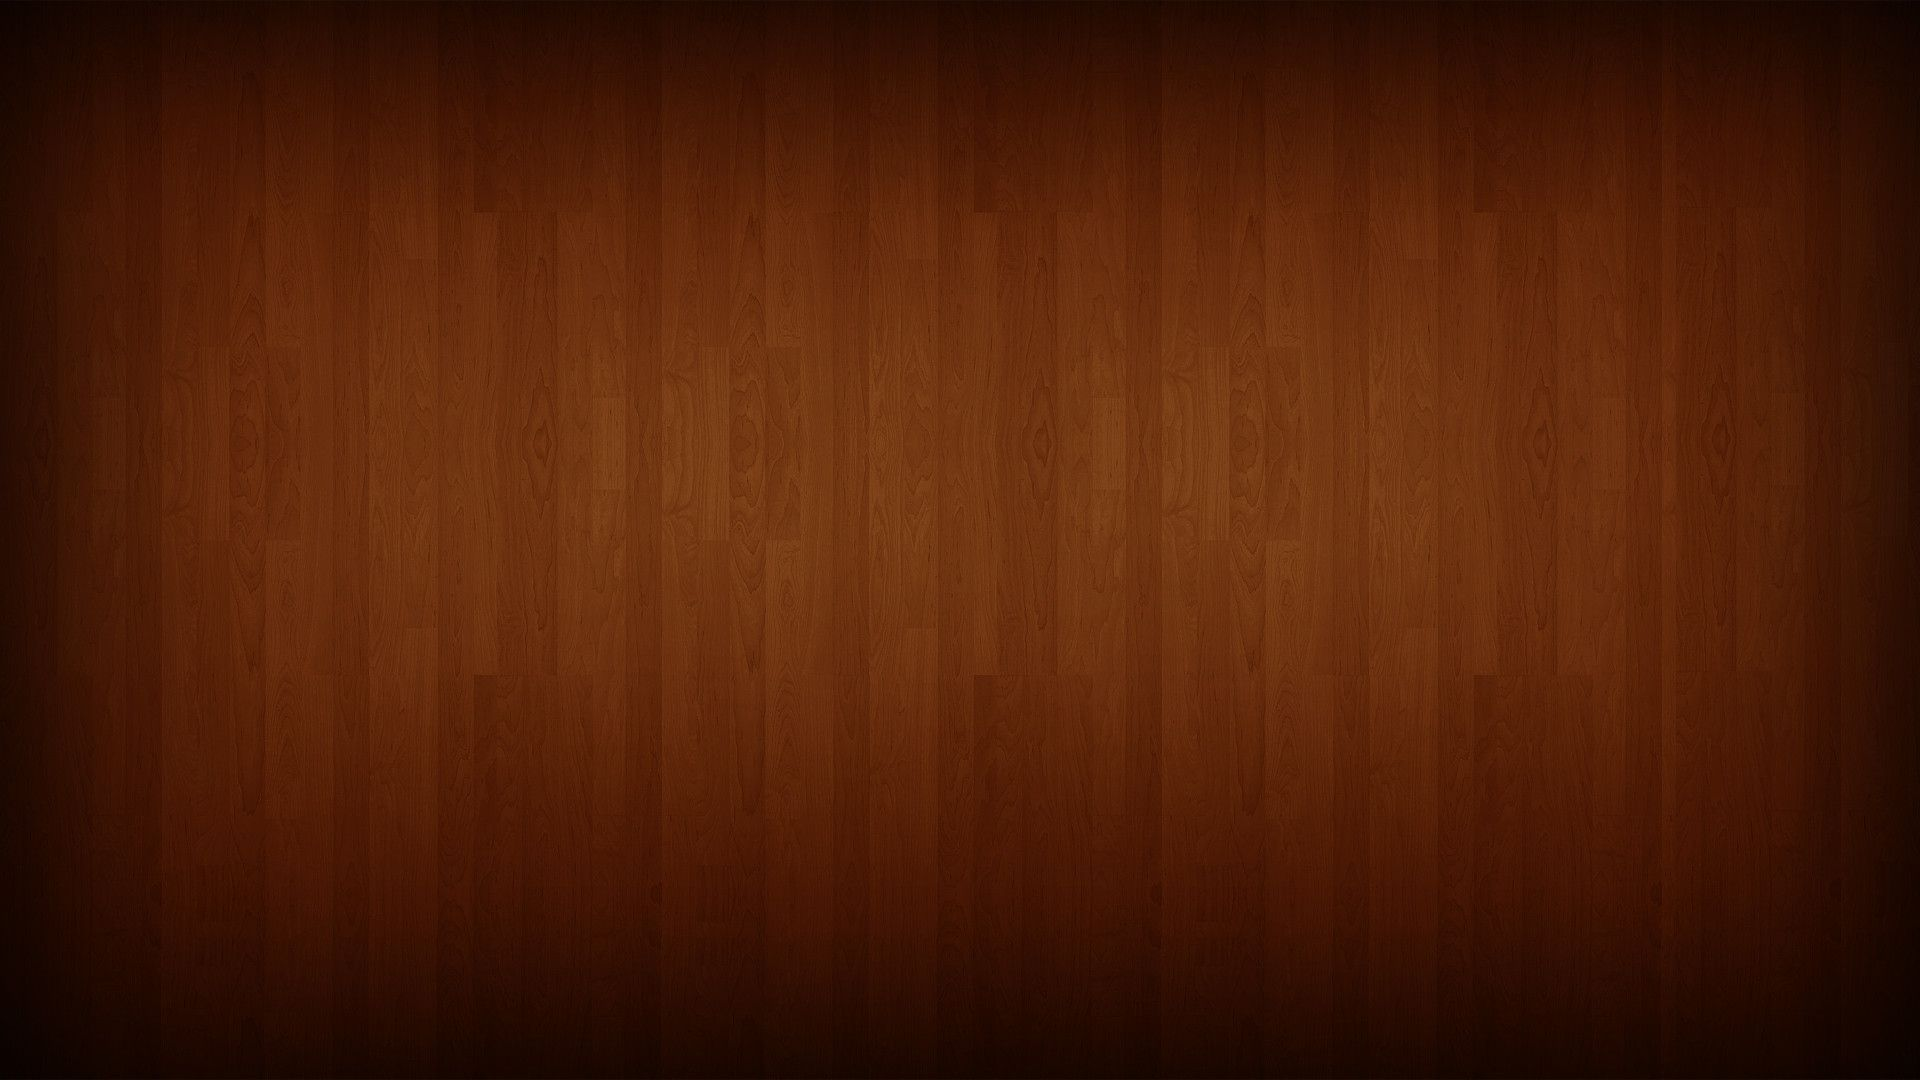 Wood Wallpapers 1080p - Wallpaper Cave